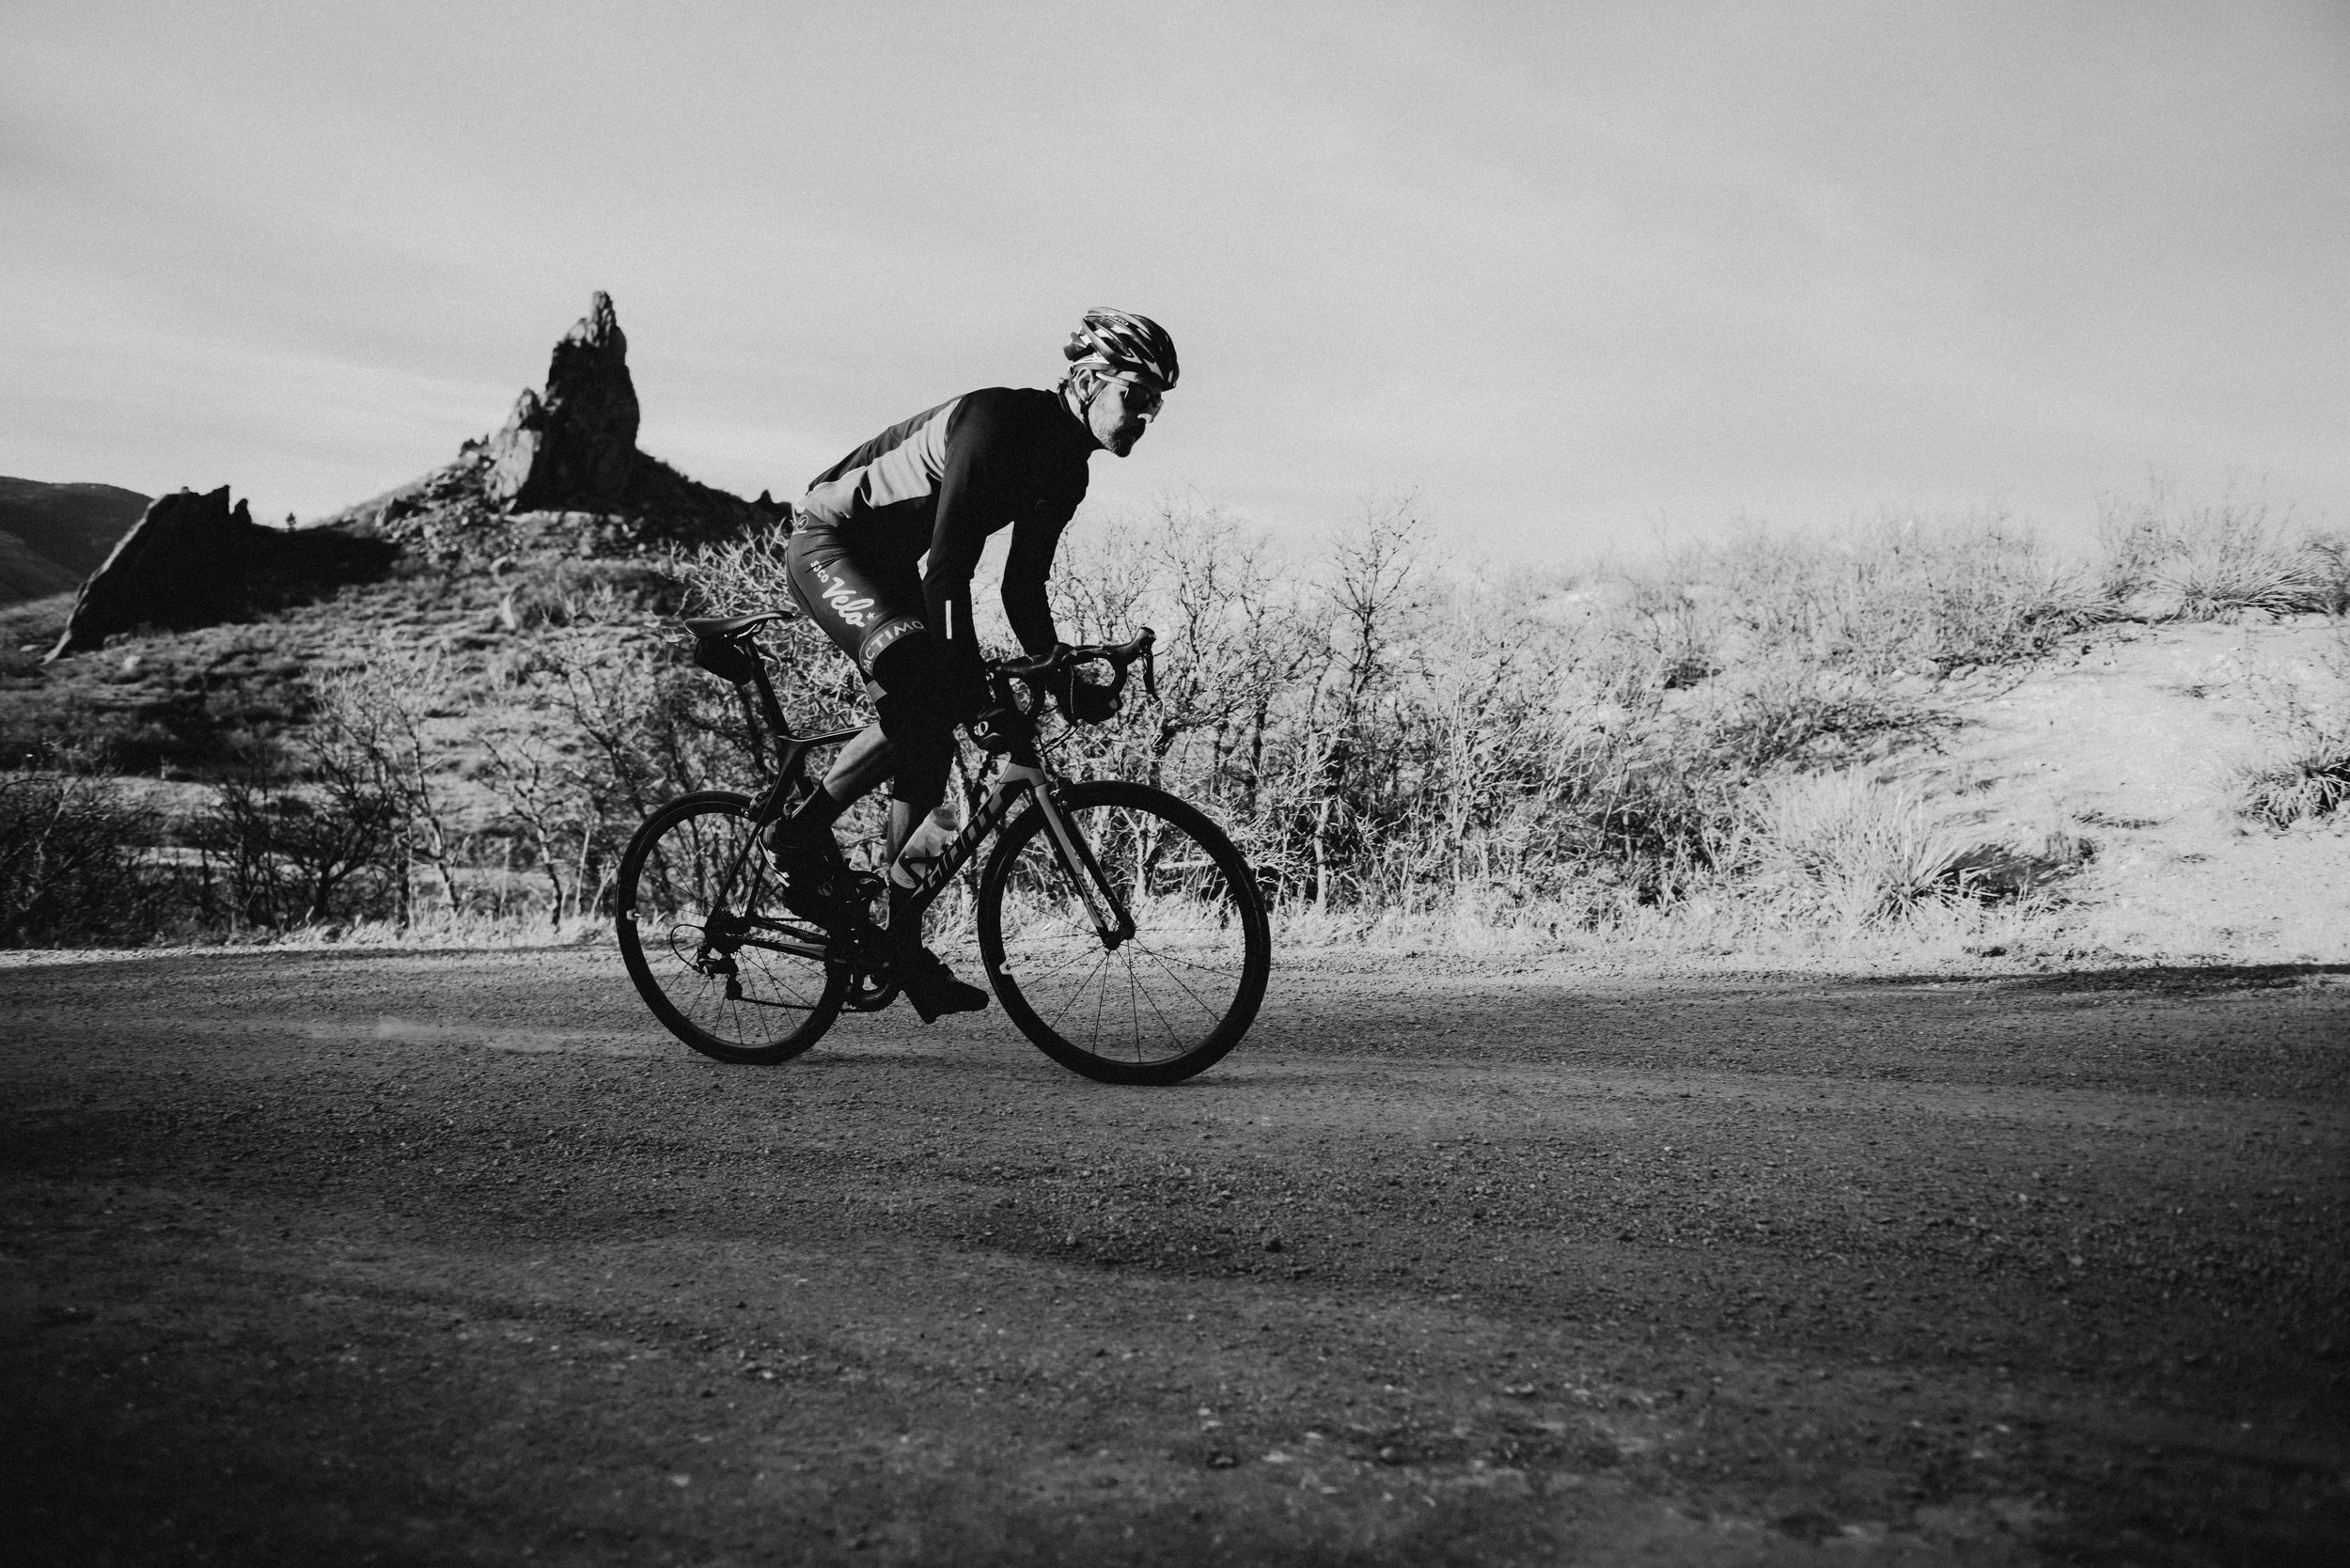 blackandwhite_cycling_photography.jpg